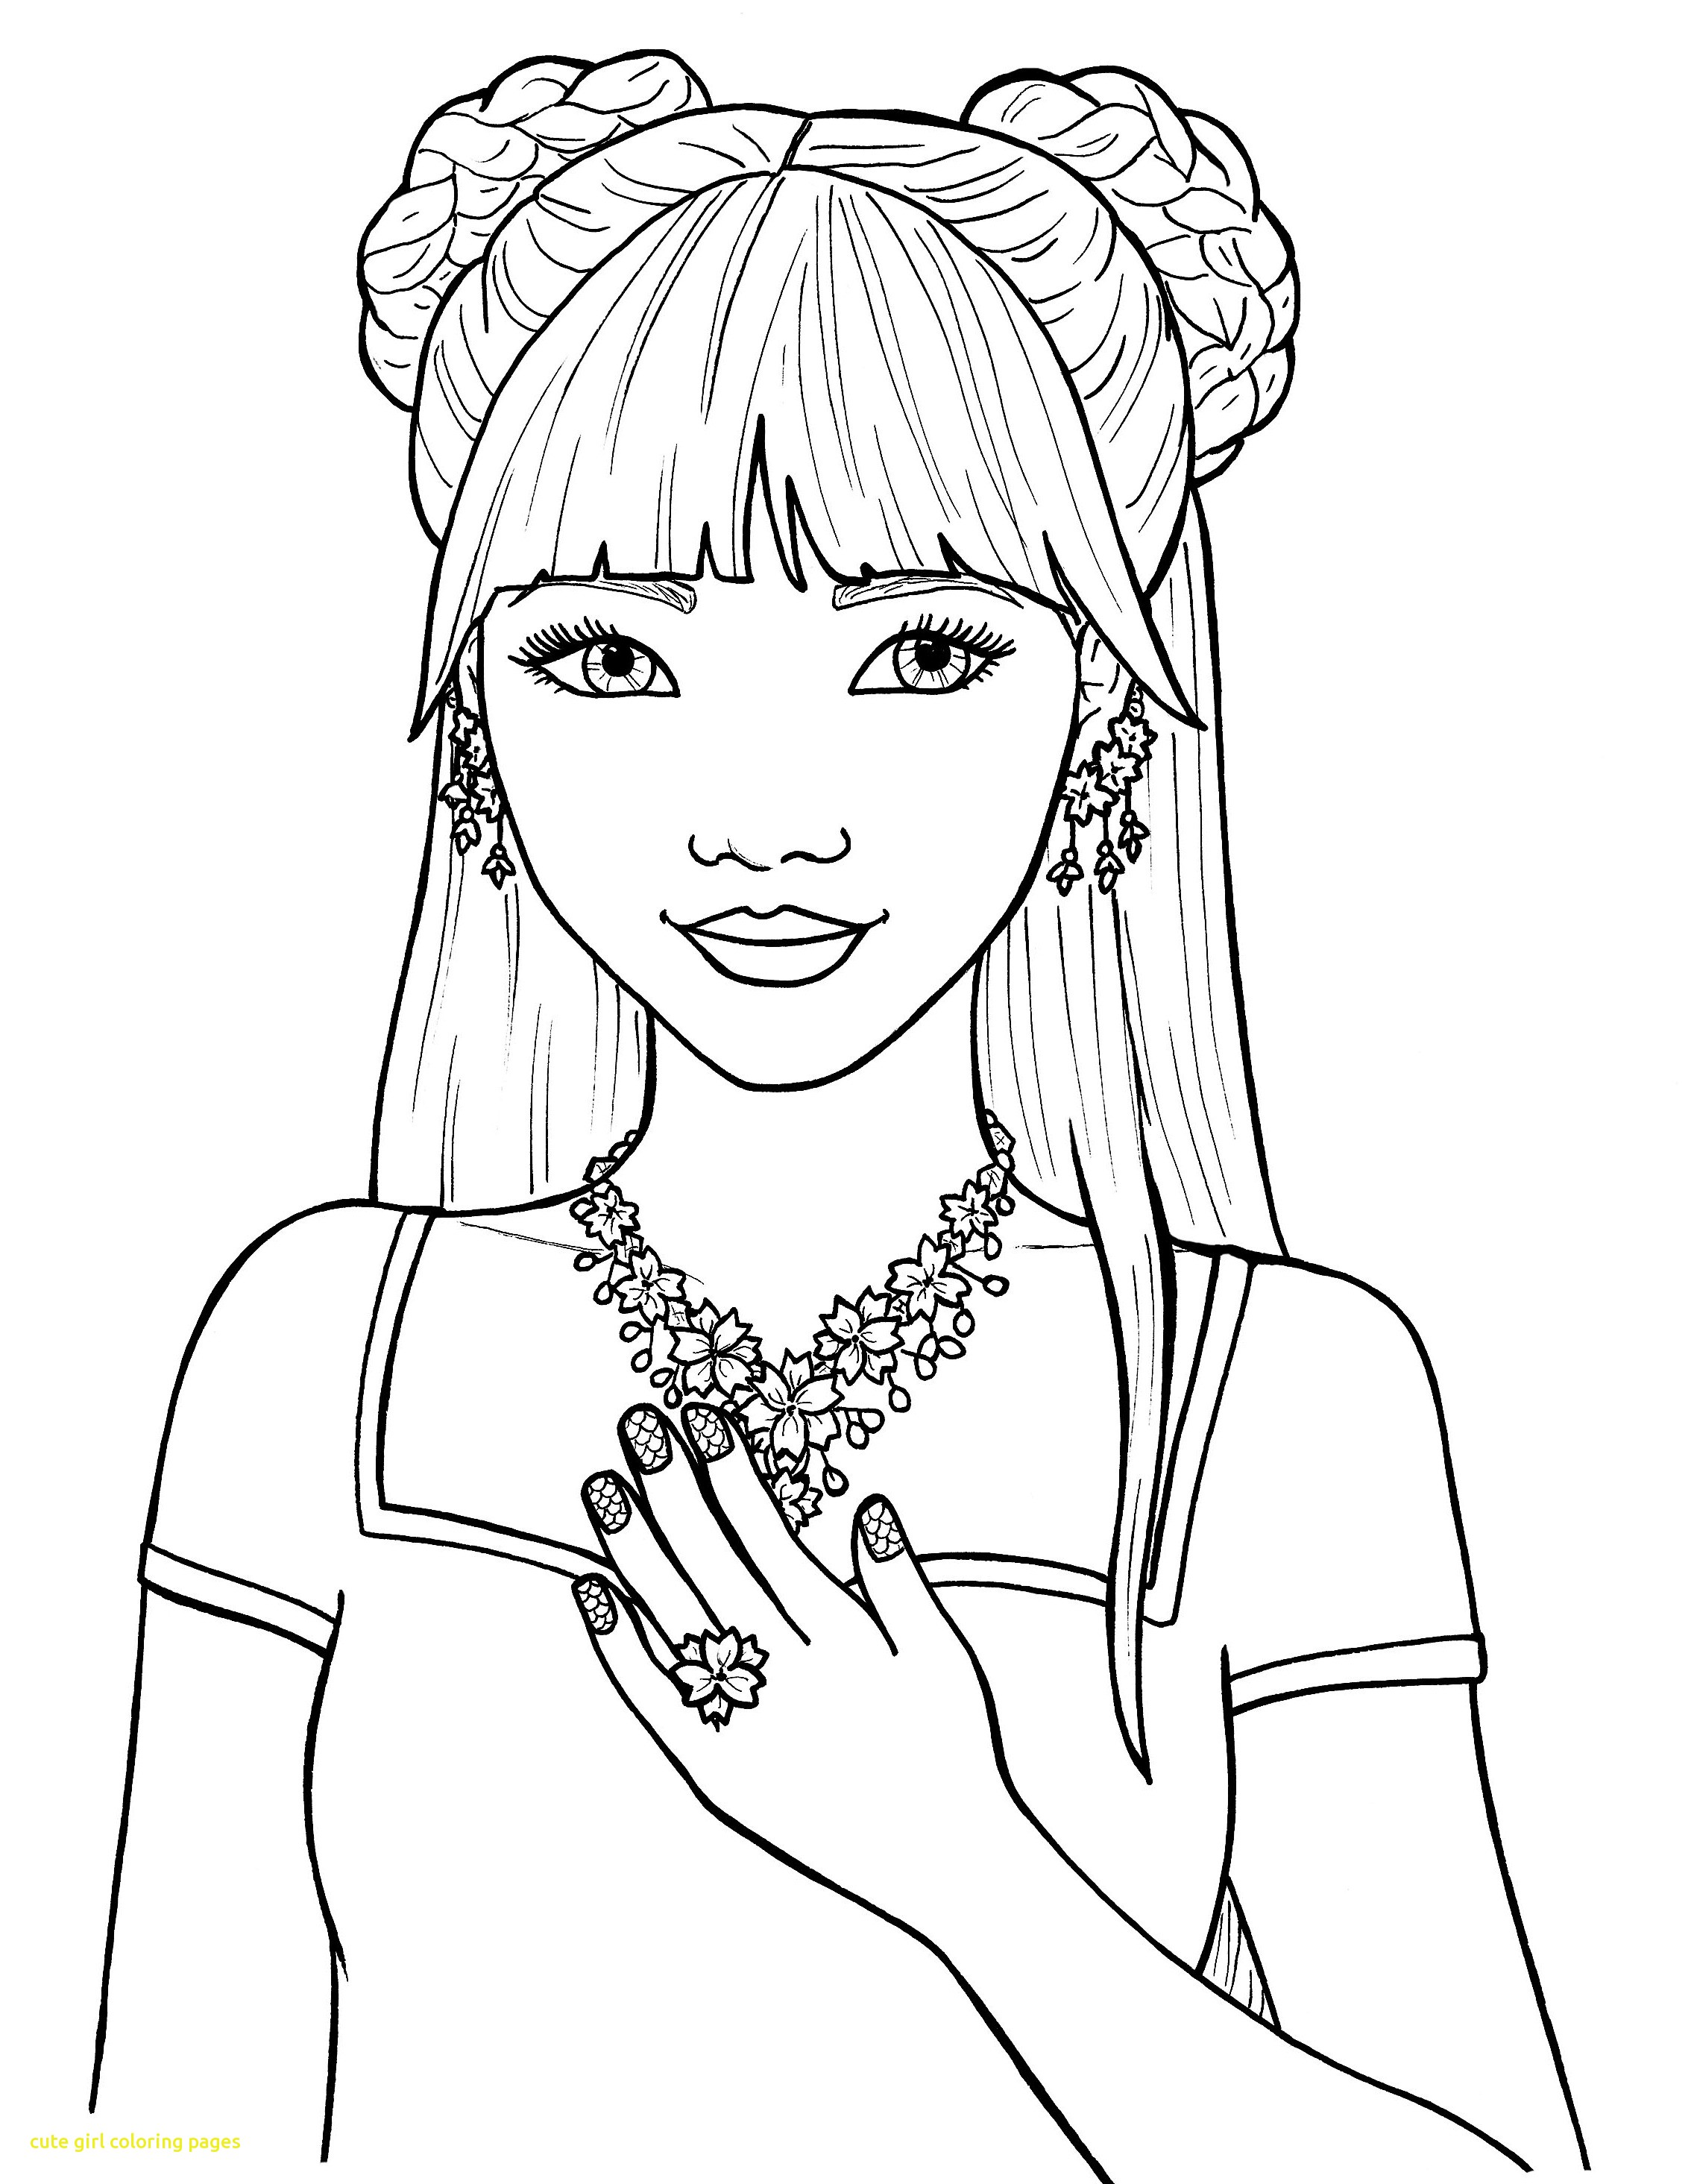 girls colouring pages coloring pages for girls best coloring pages for kids girls pages colouring